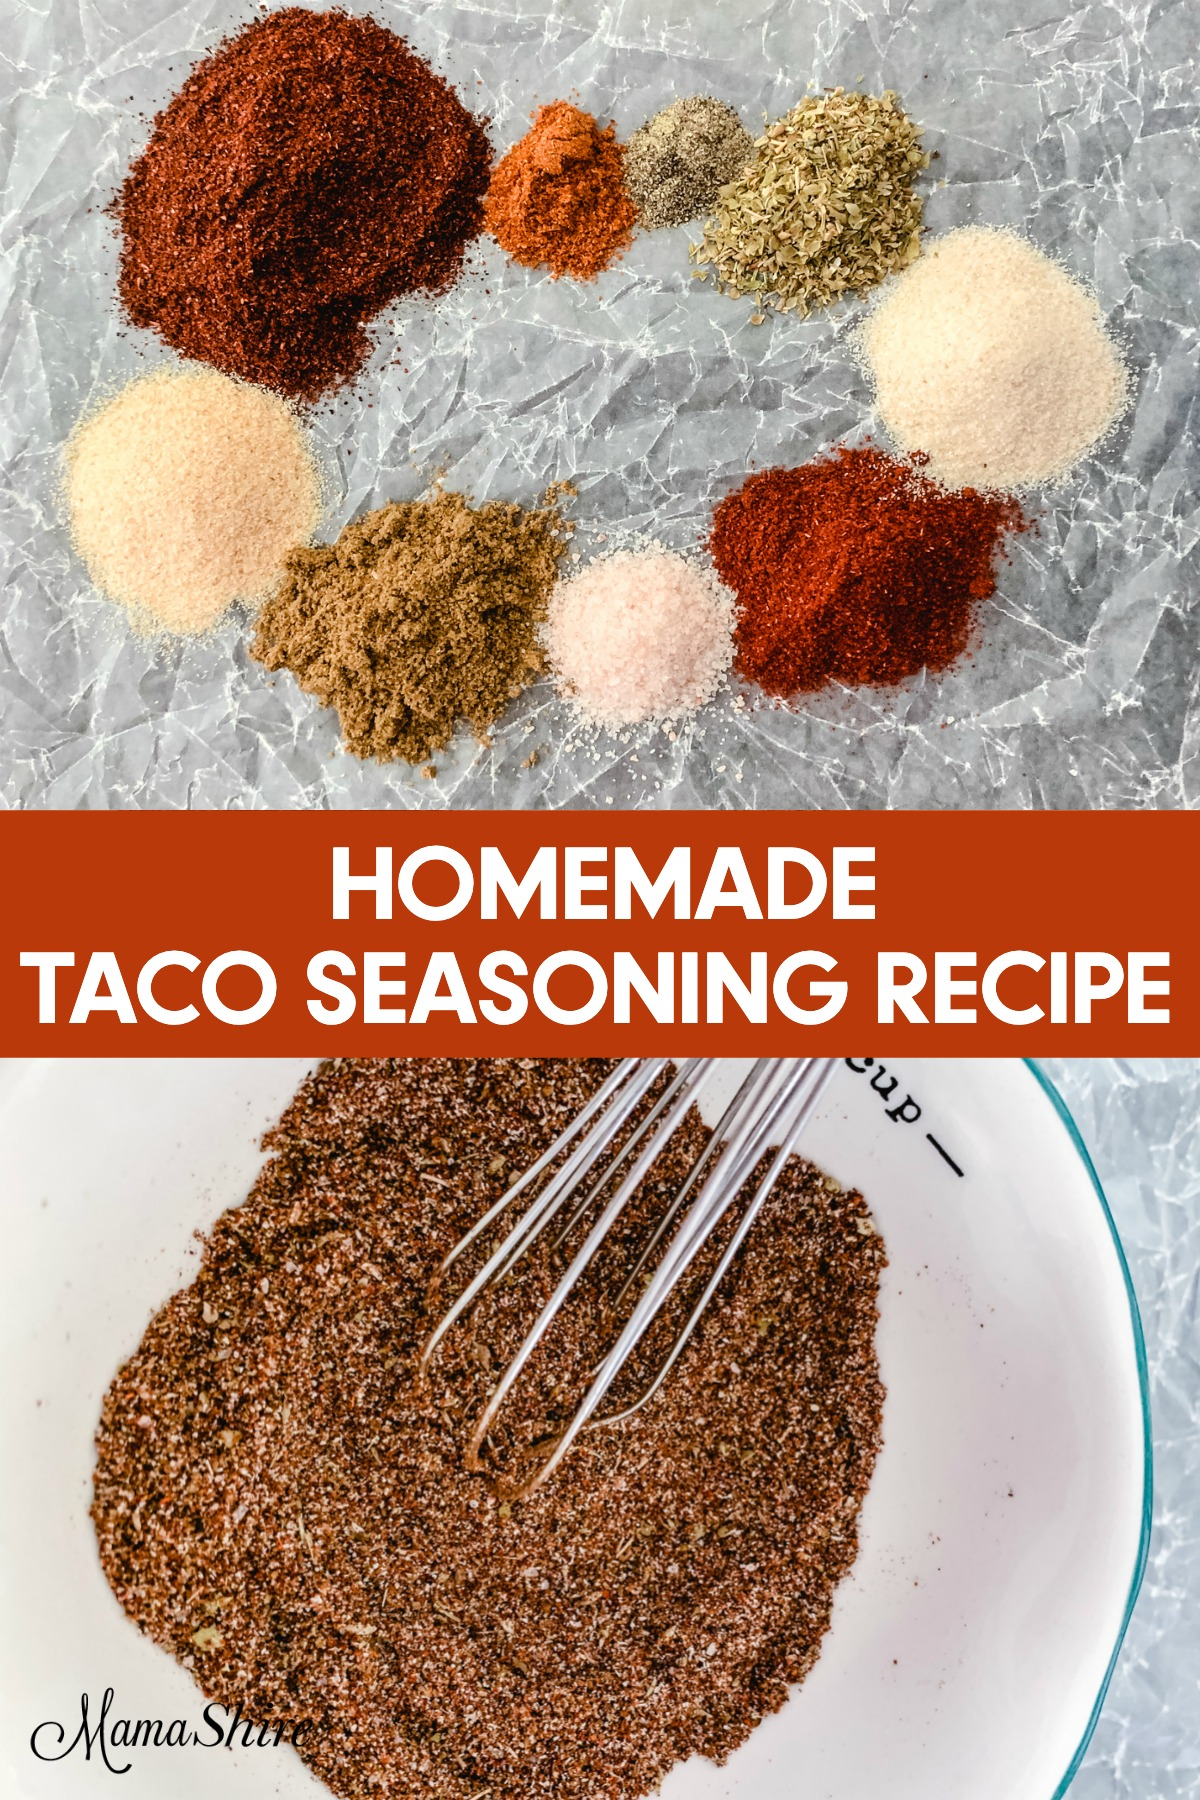 Ingredients for taco seasoning recipe.